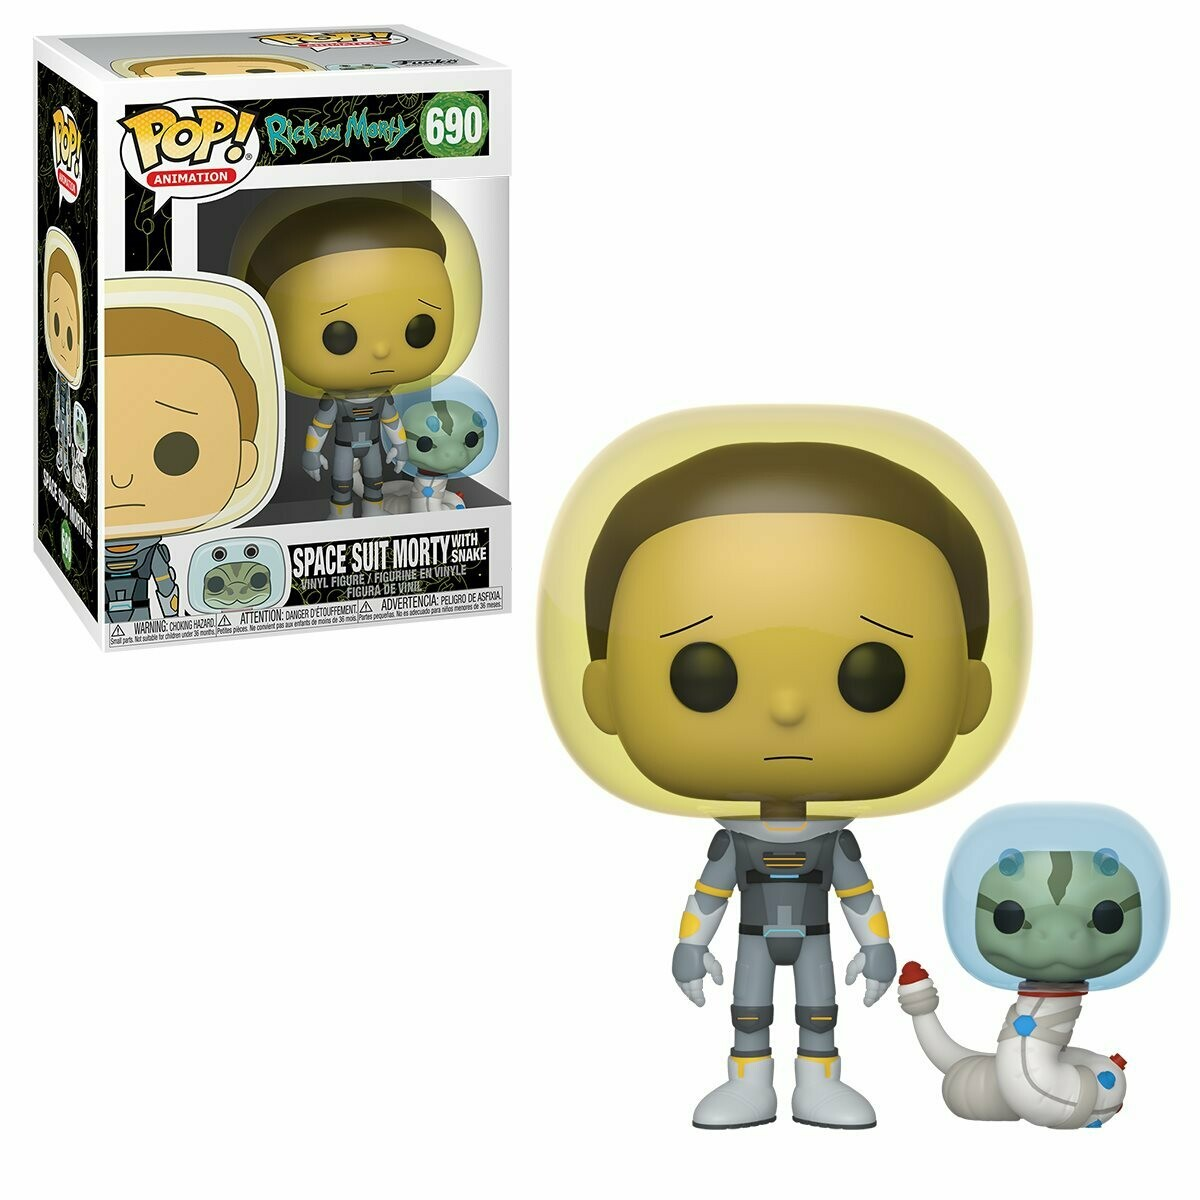 Rick and Morty Space Suit Morty With Snake Pop! Vinyl Figure